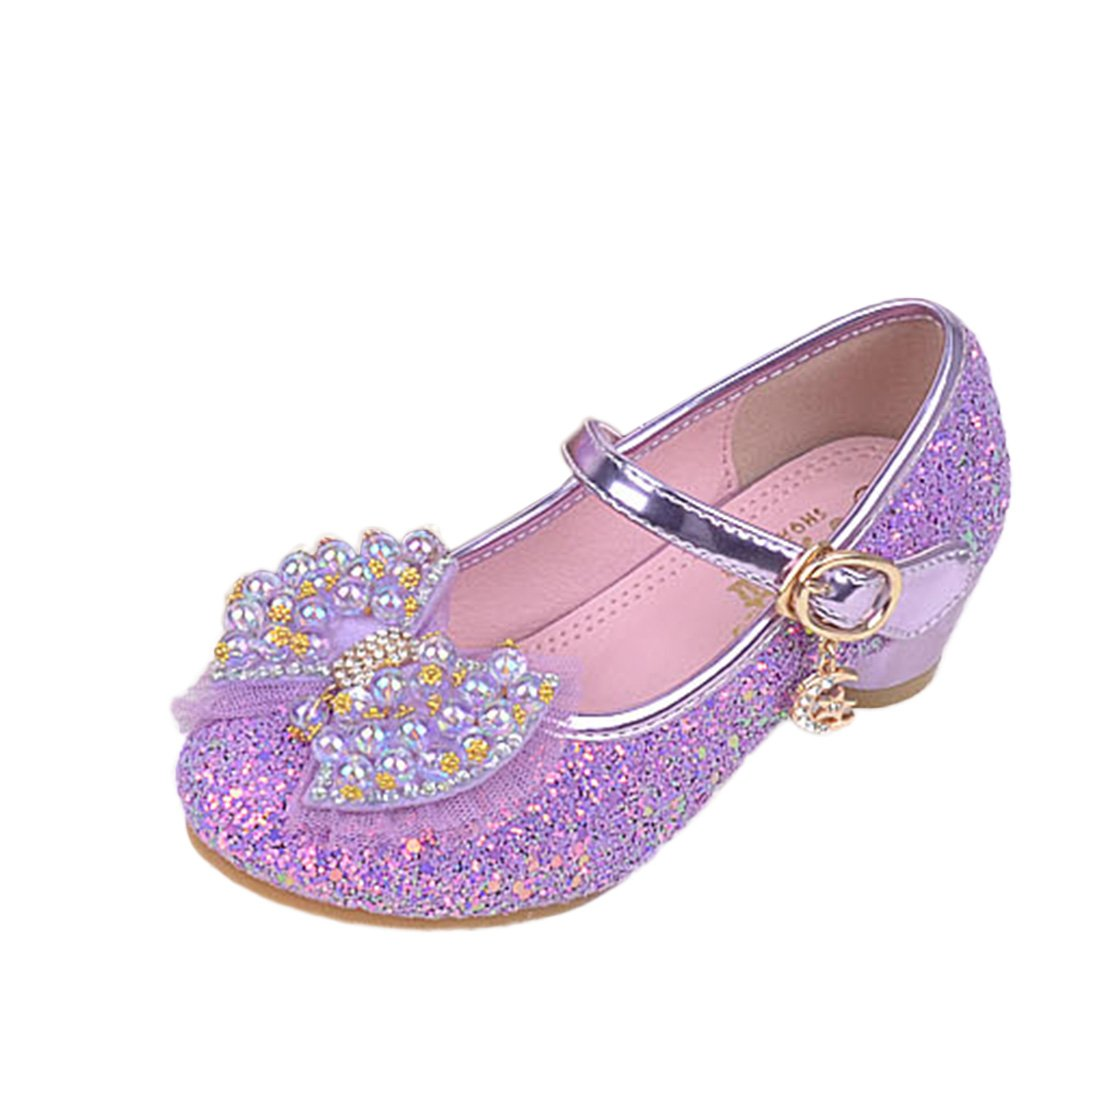 Kids Girls Princess Shoes Faux Pearl Mary Jane Wedding Glitter Dance Party Shoes Low Heels